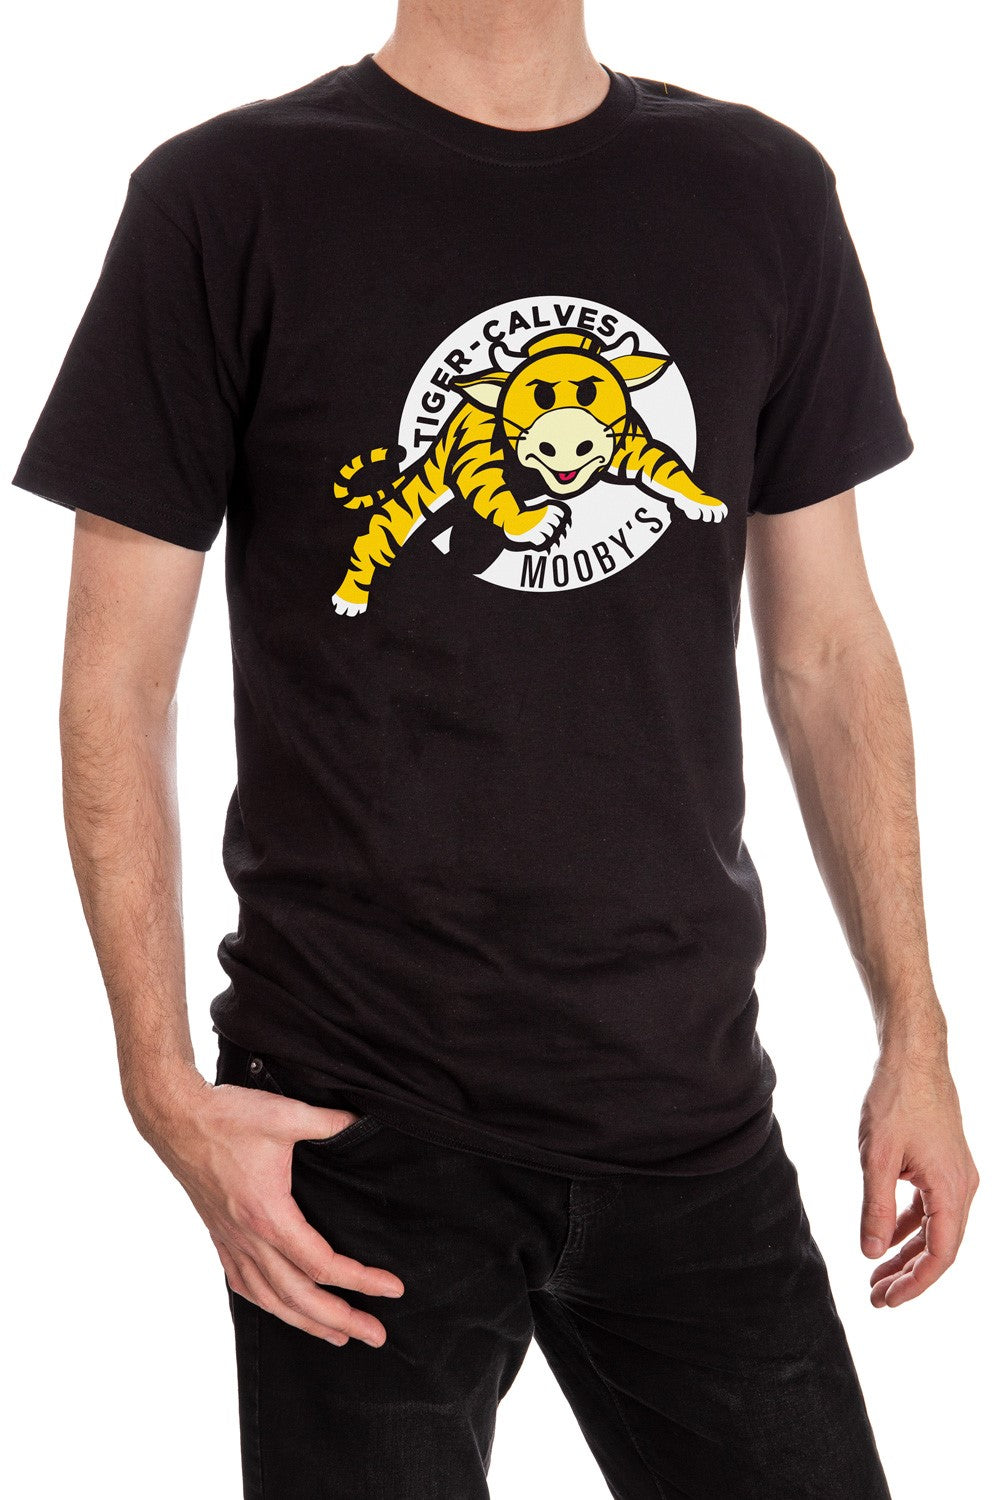 Limited Edition Mooby's Tiger-Calves Parody T-Shirt - Jay and Silent Bob